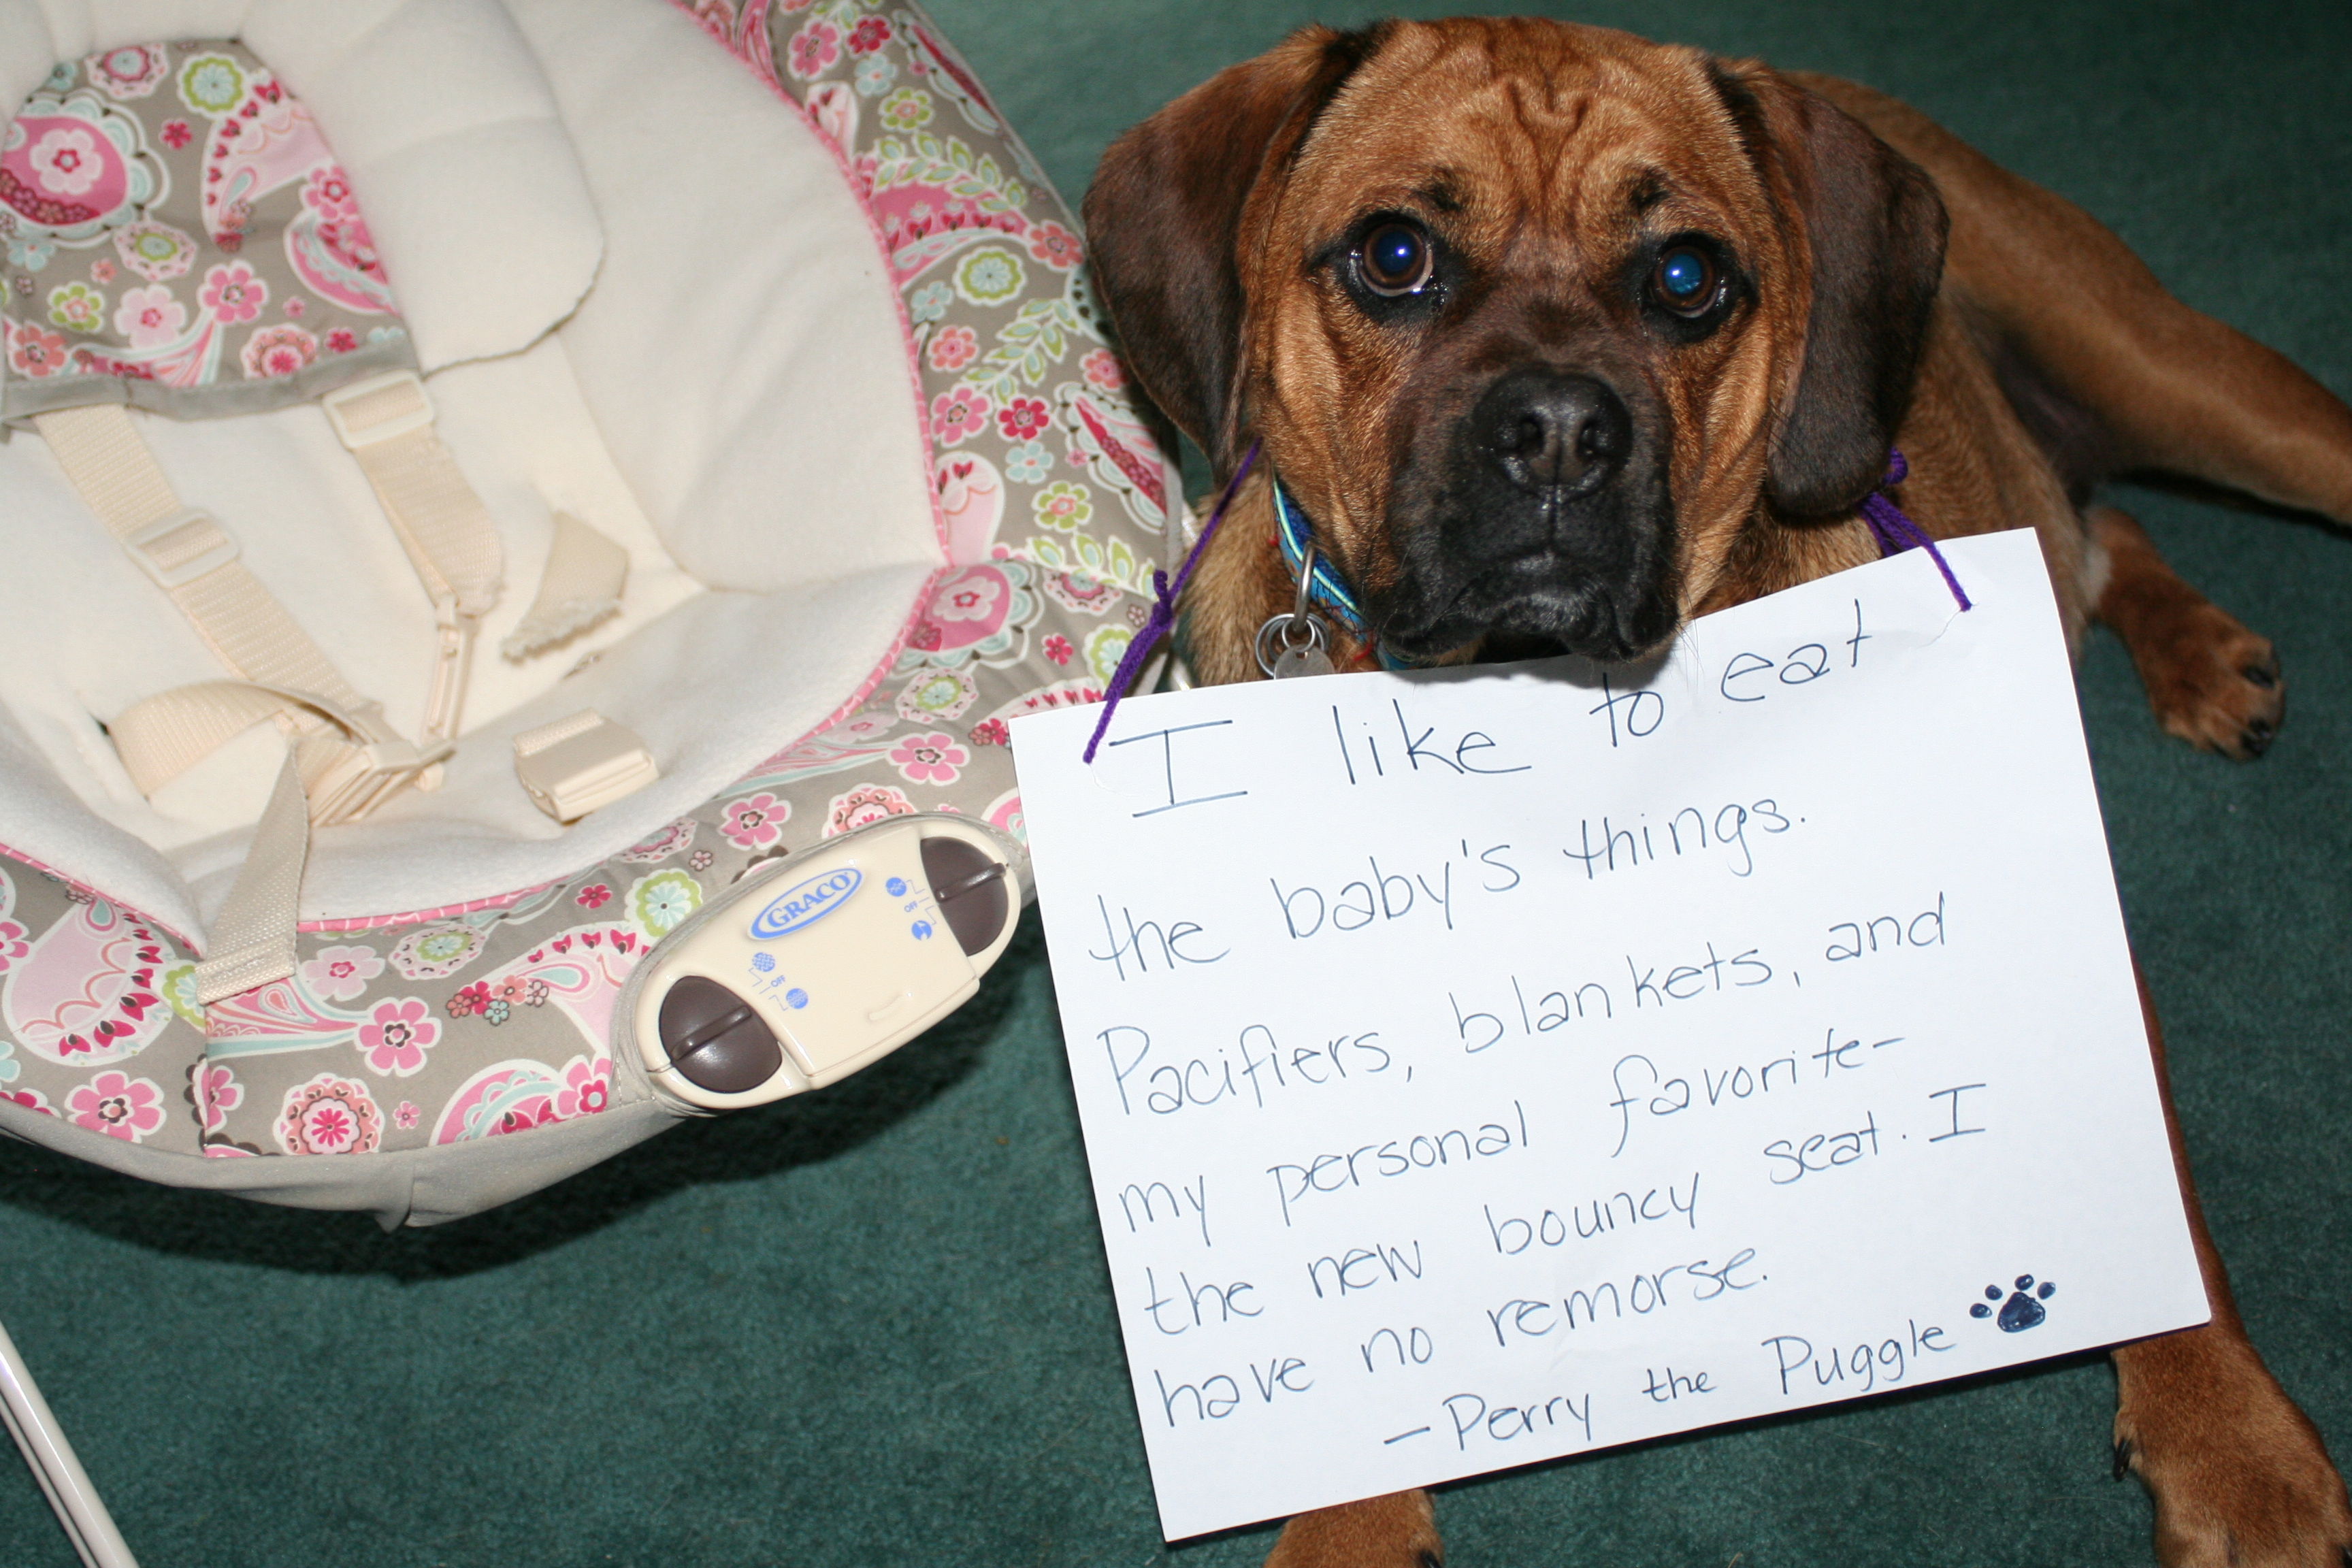 Dog And Human Mix Dogshaming.com